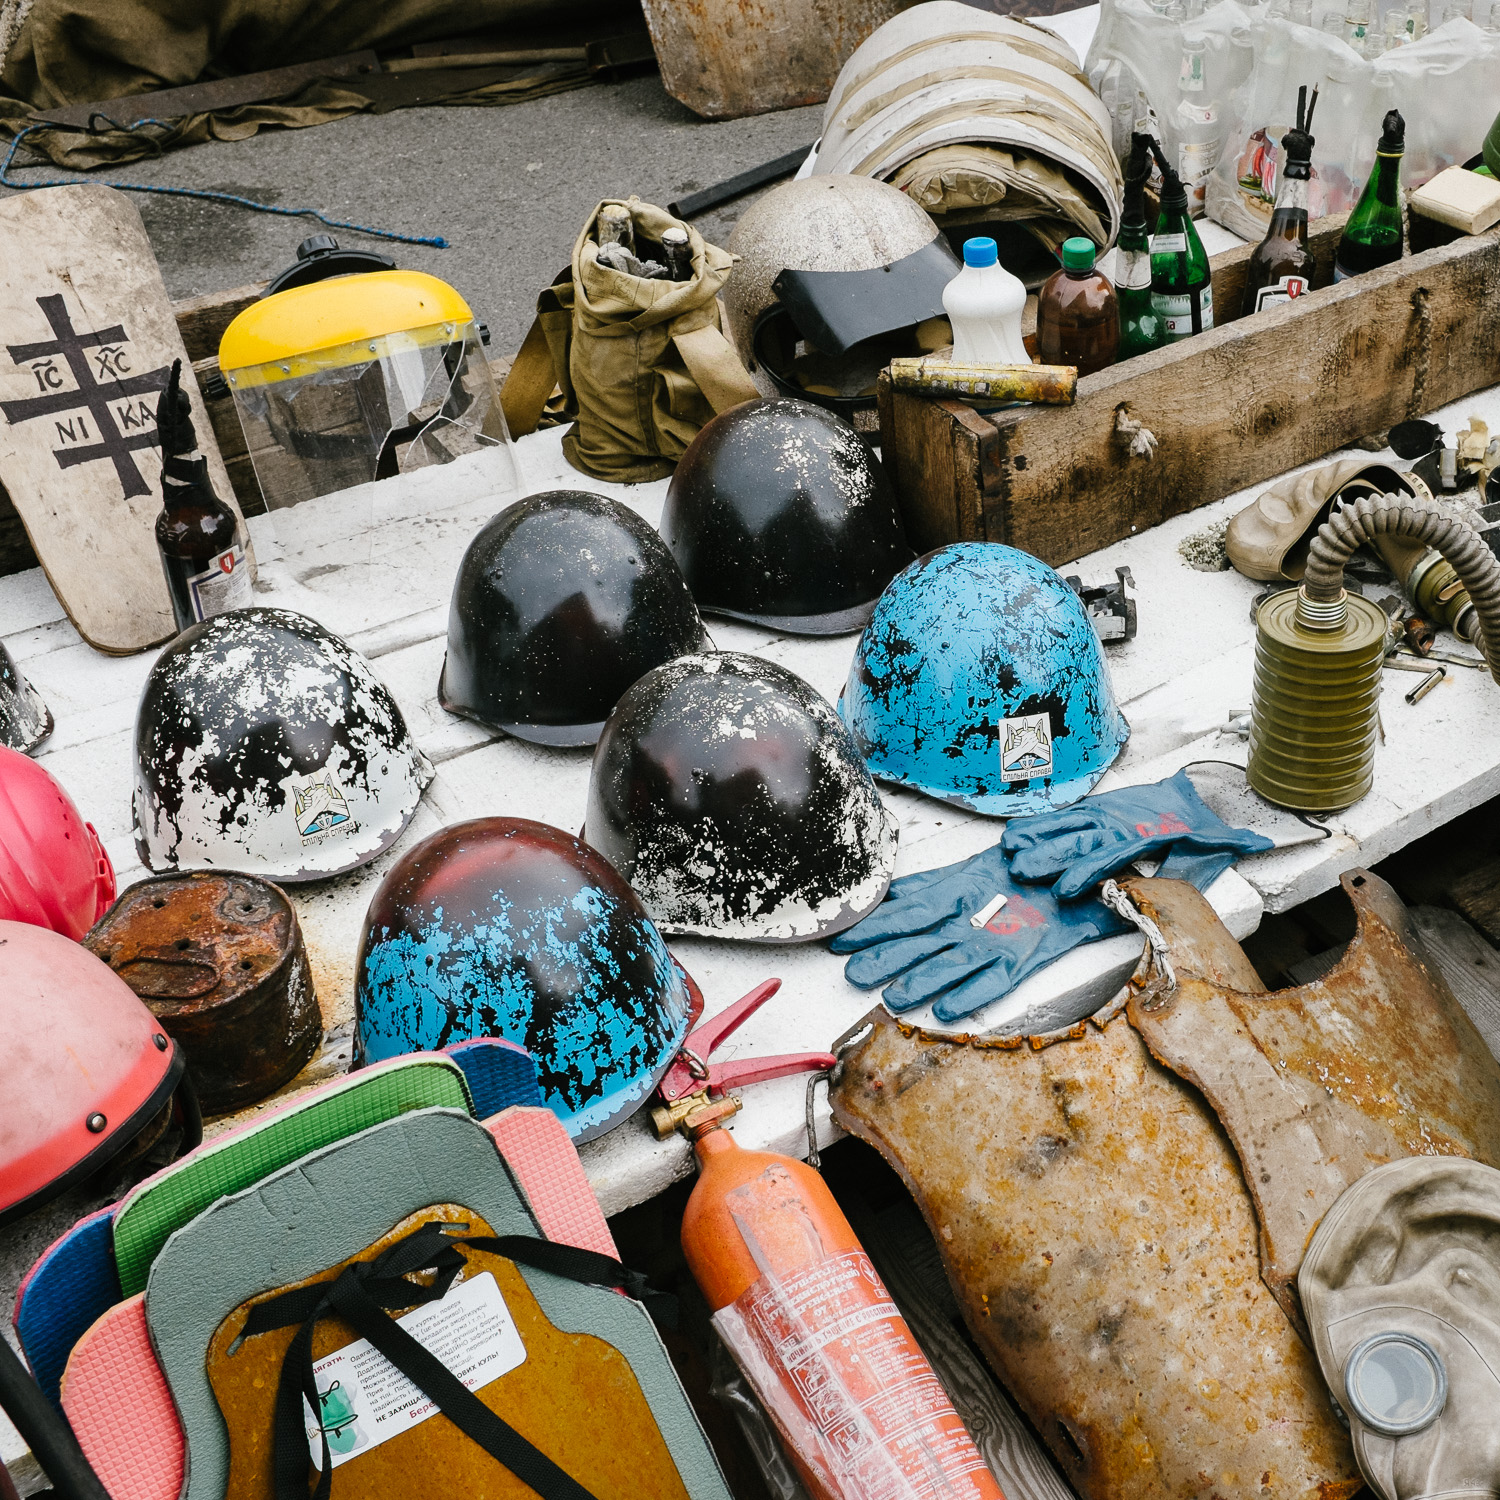 A display of helmets, shields and other items on Khreshchatyk, the main street running through Kiev's Independence Square, and a site of protest since the beginning of the Euromaidan uprisings in November 2013.